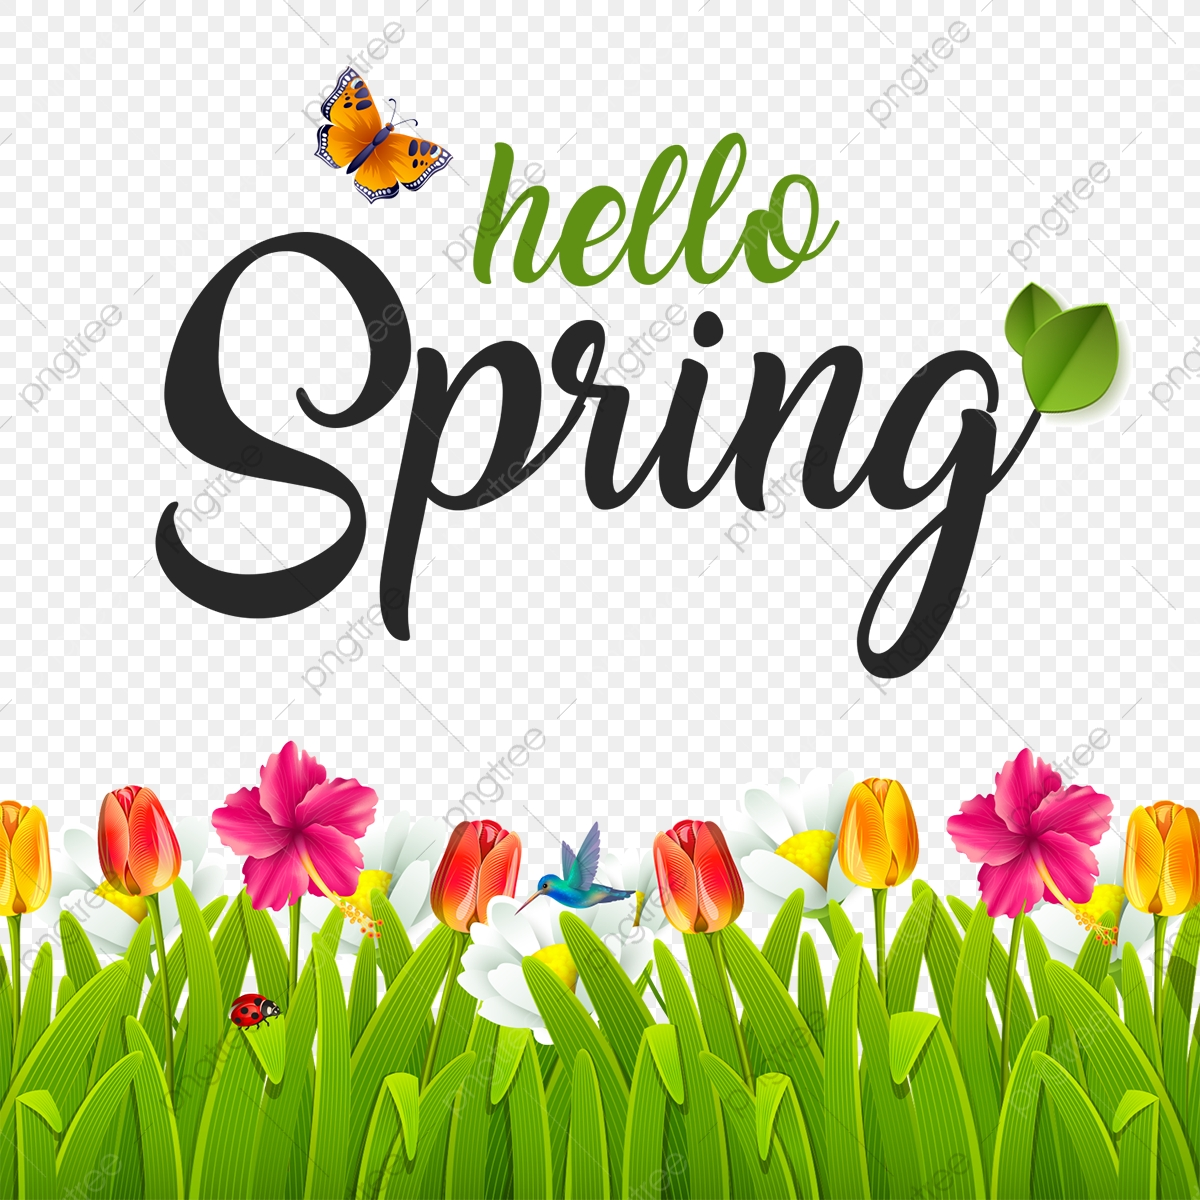 Beautiful Hello Spring, Spring, Green PNG Transparent Clipart Image.